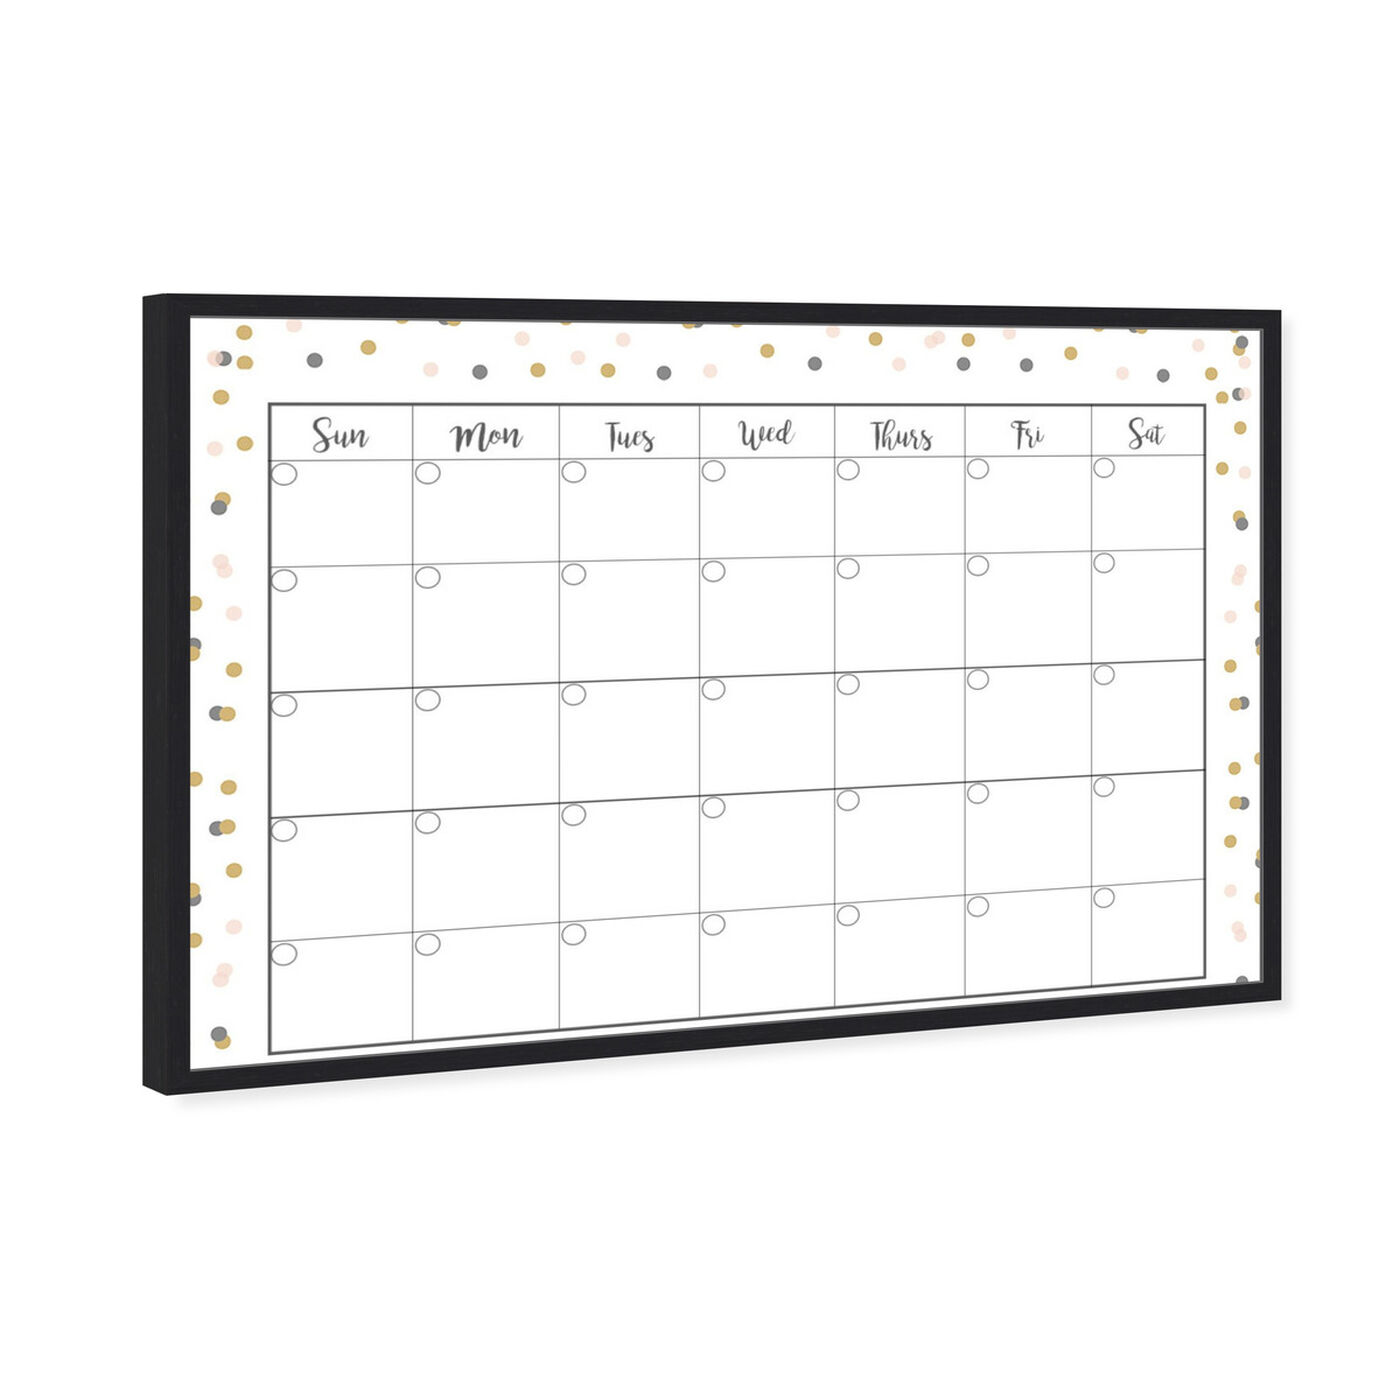 Angled view of Confetti Calender featuring education and office and educational charts art.